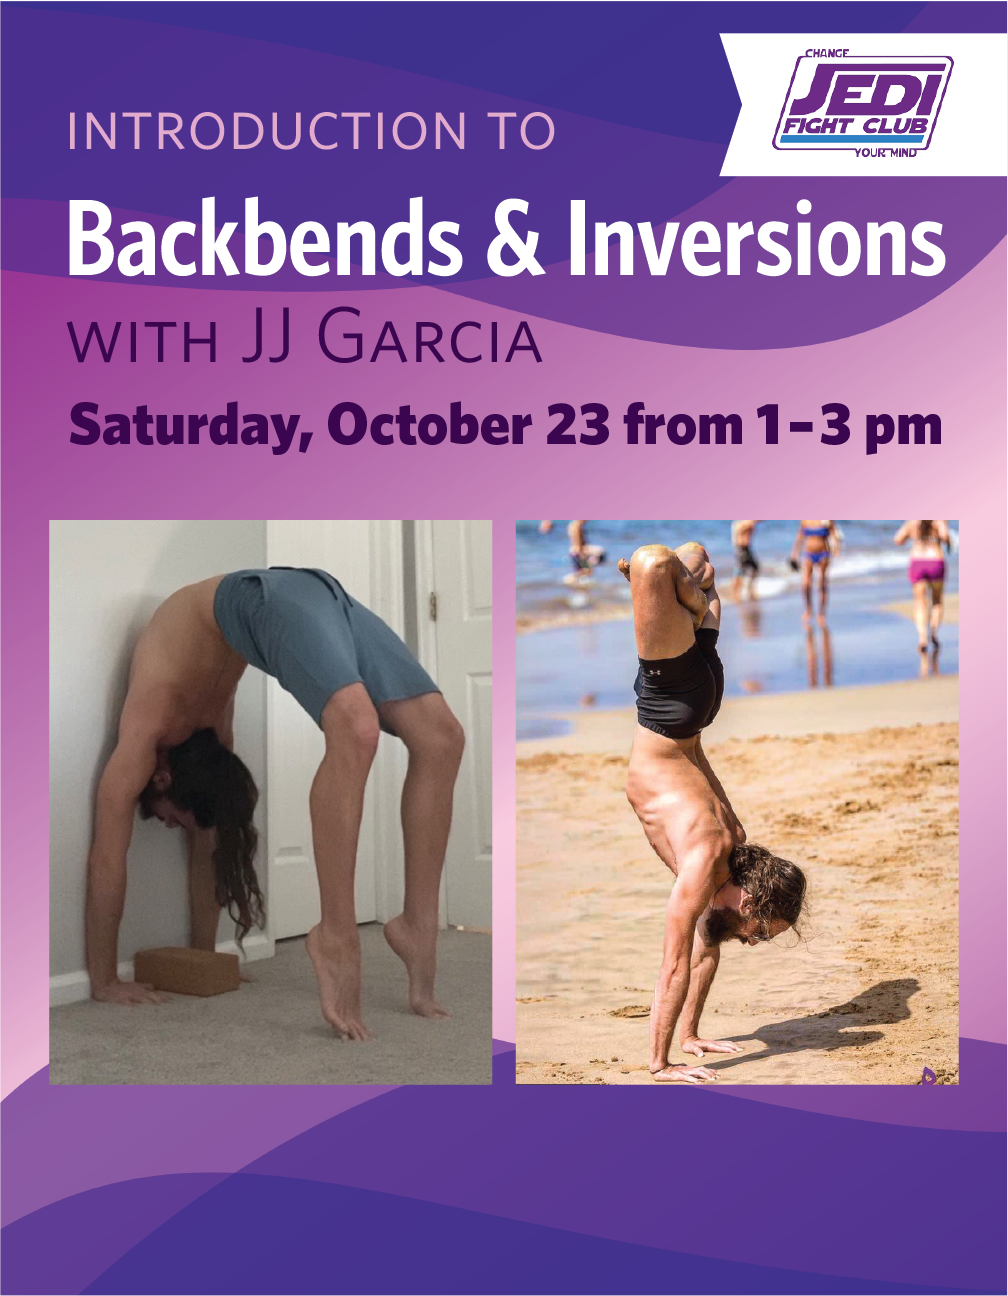 Introduction to Backbends & Inversions